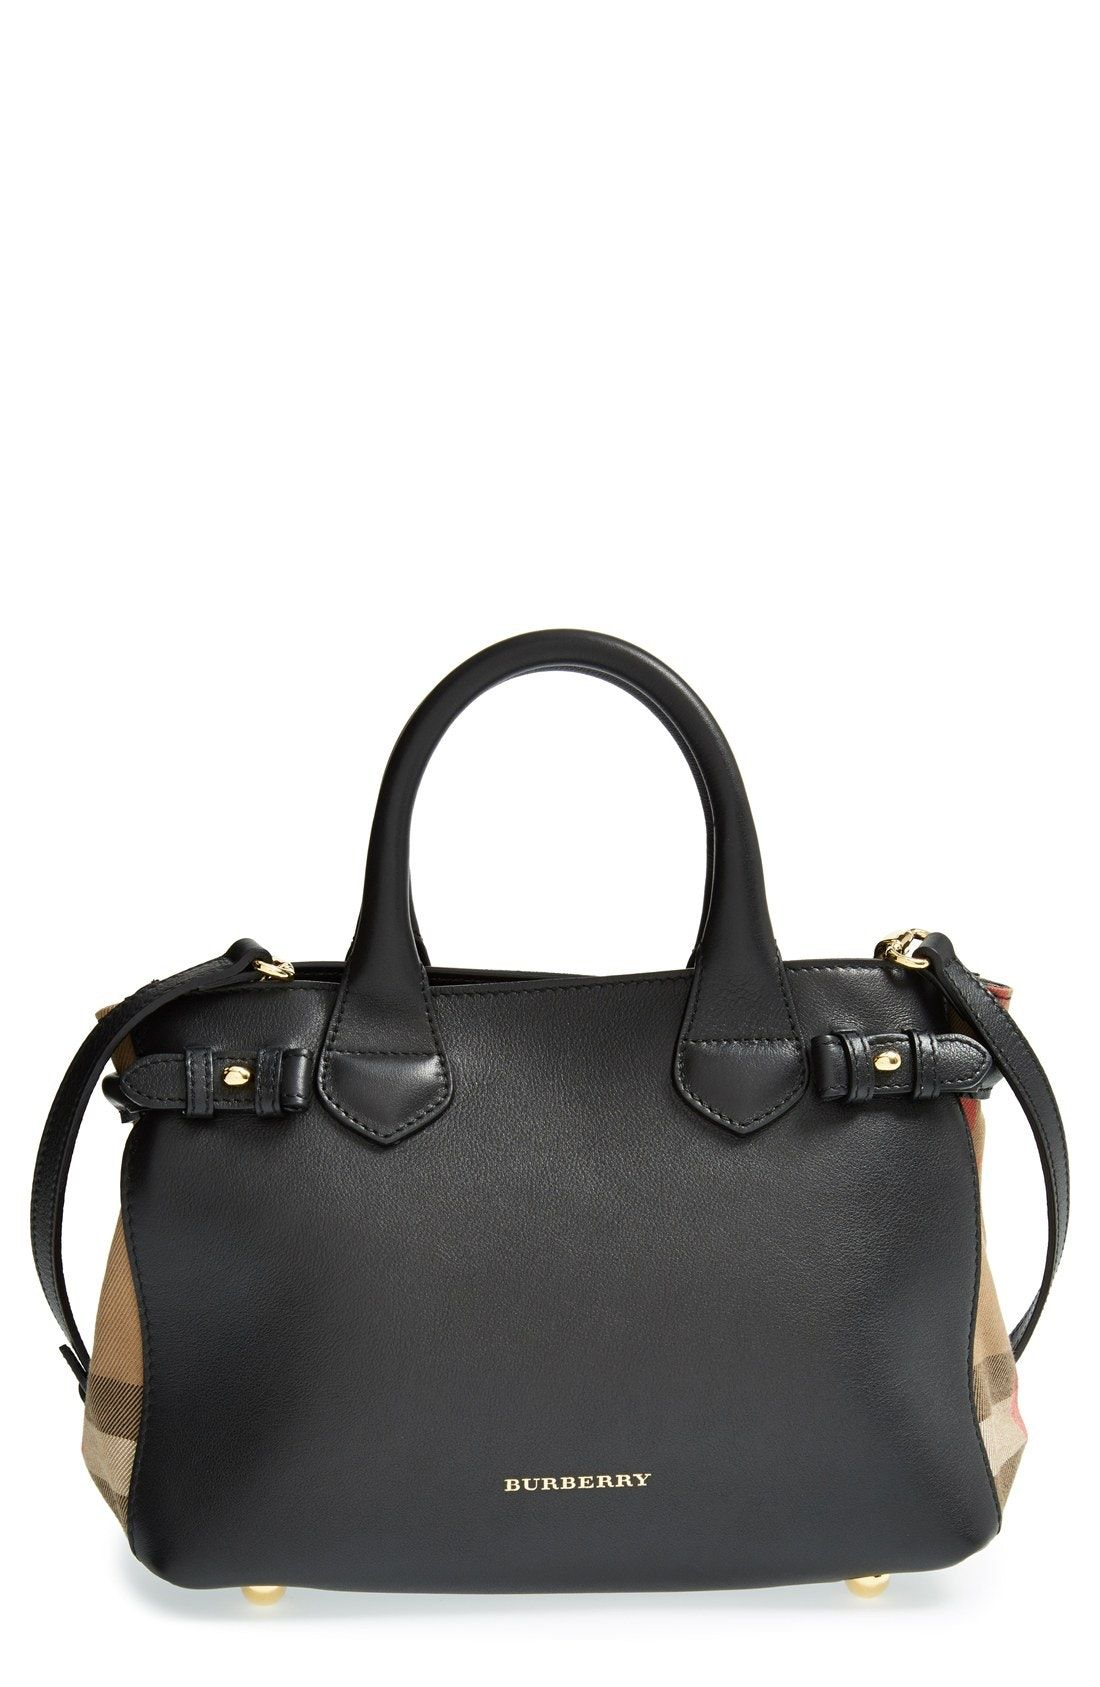 edd3be272e1f New Burberry Small Banner House Check Leather Tote fashion online.   1295